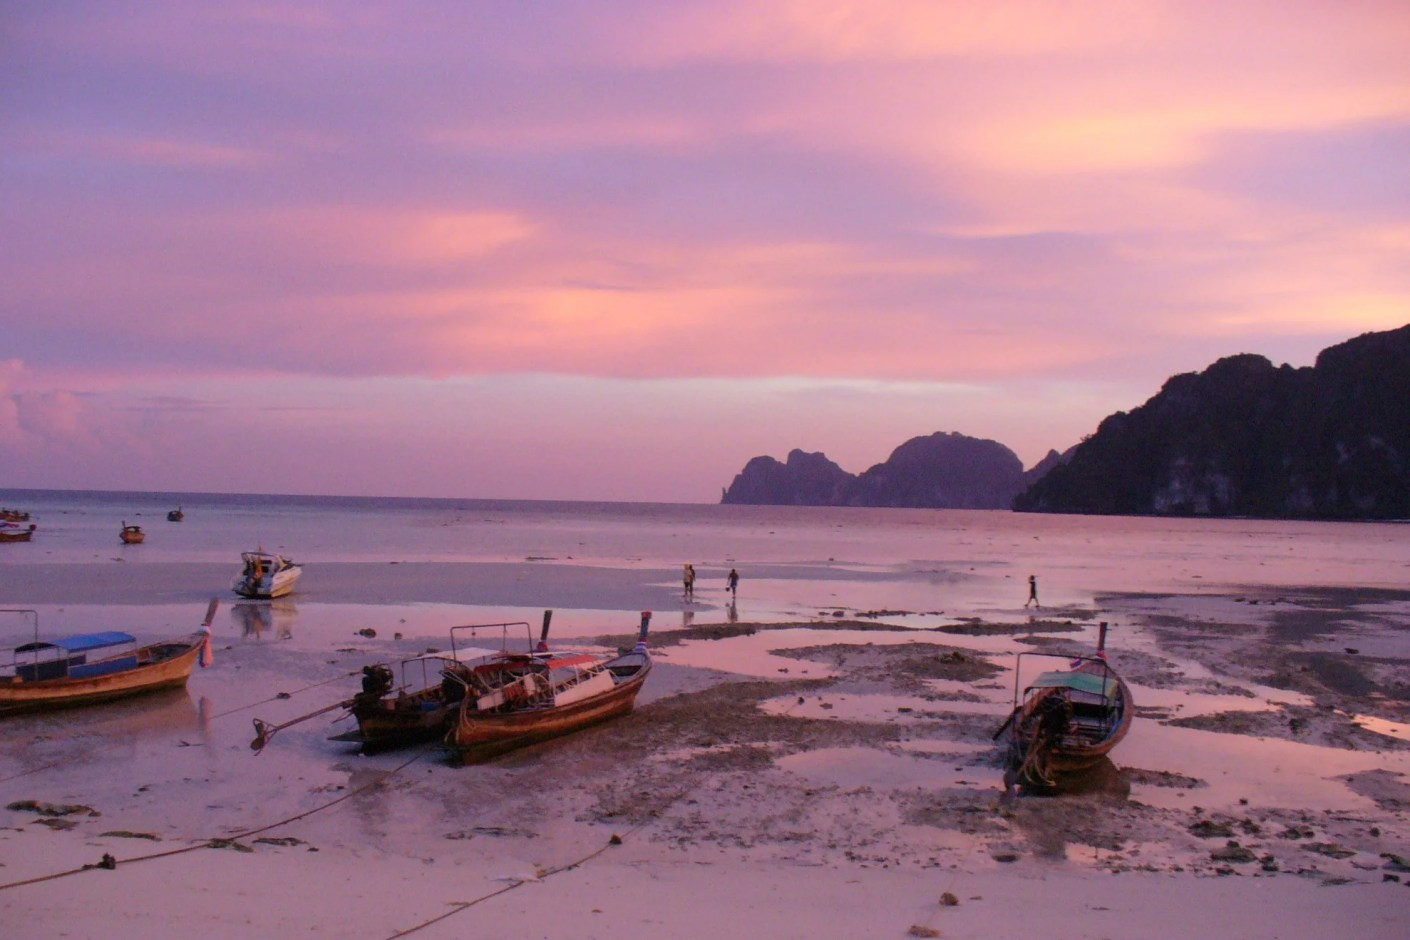 The famous sunsets of Koh Phi Phi, Thailand